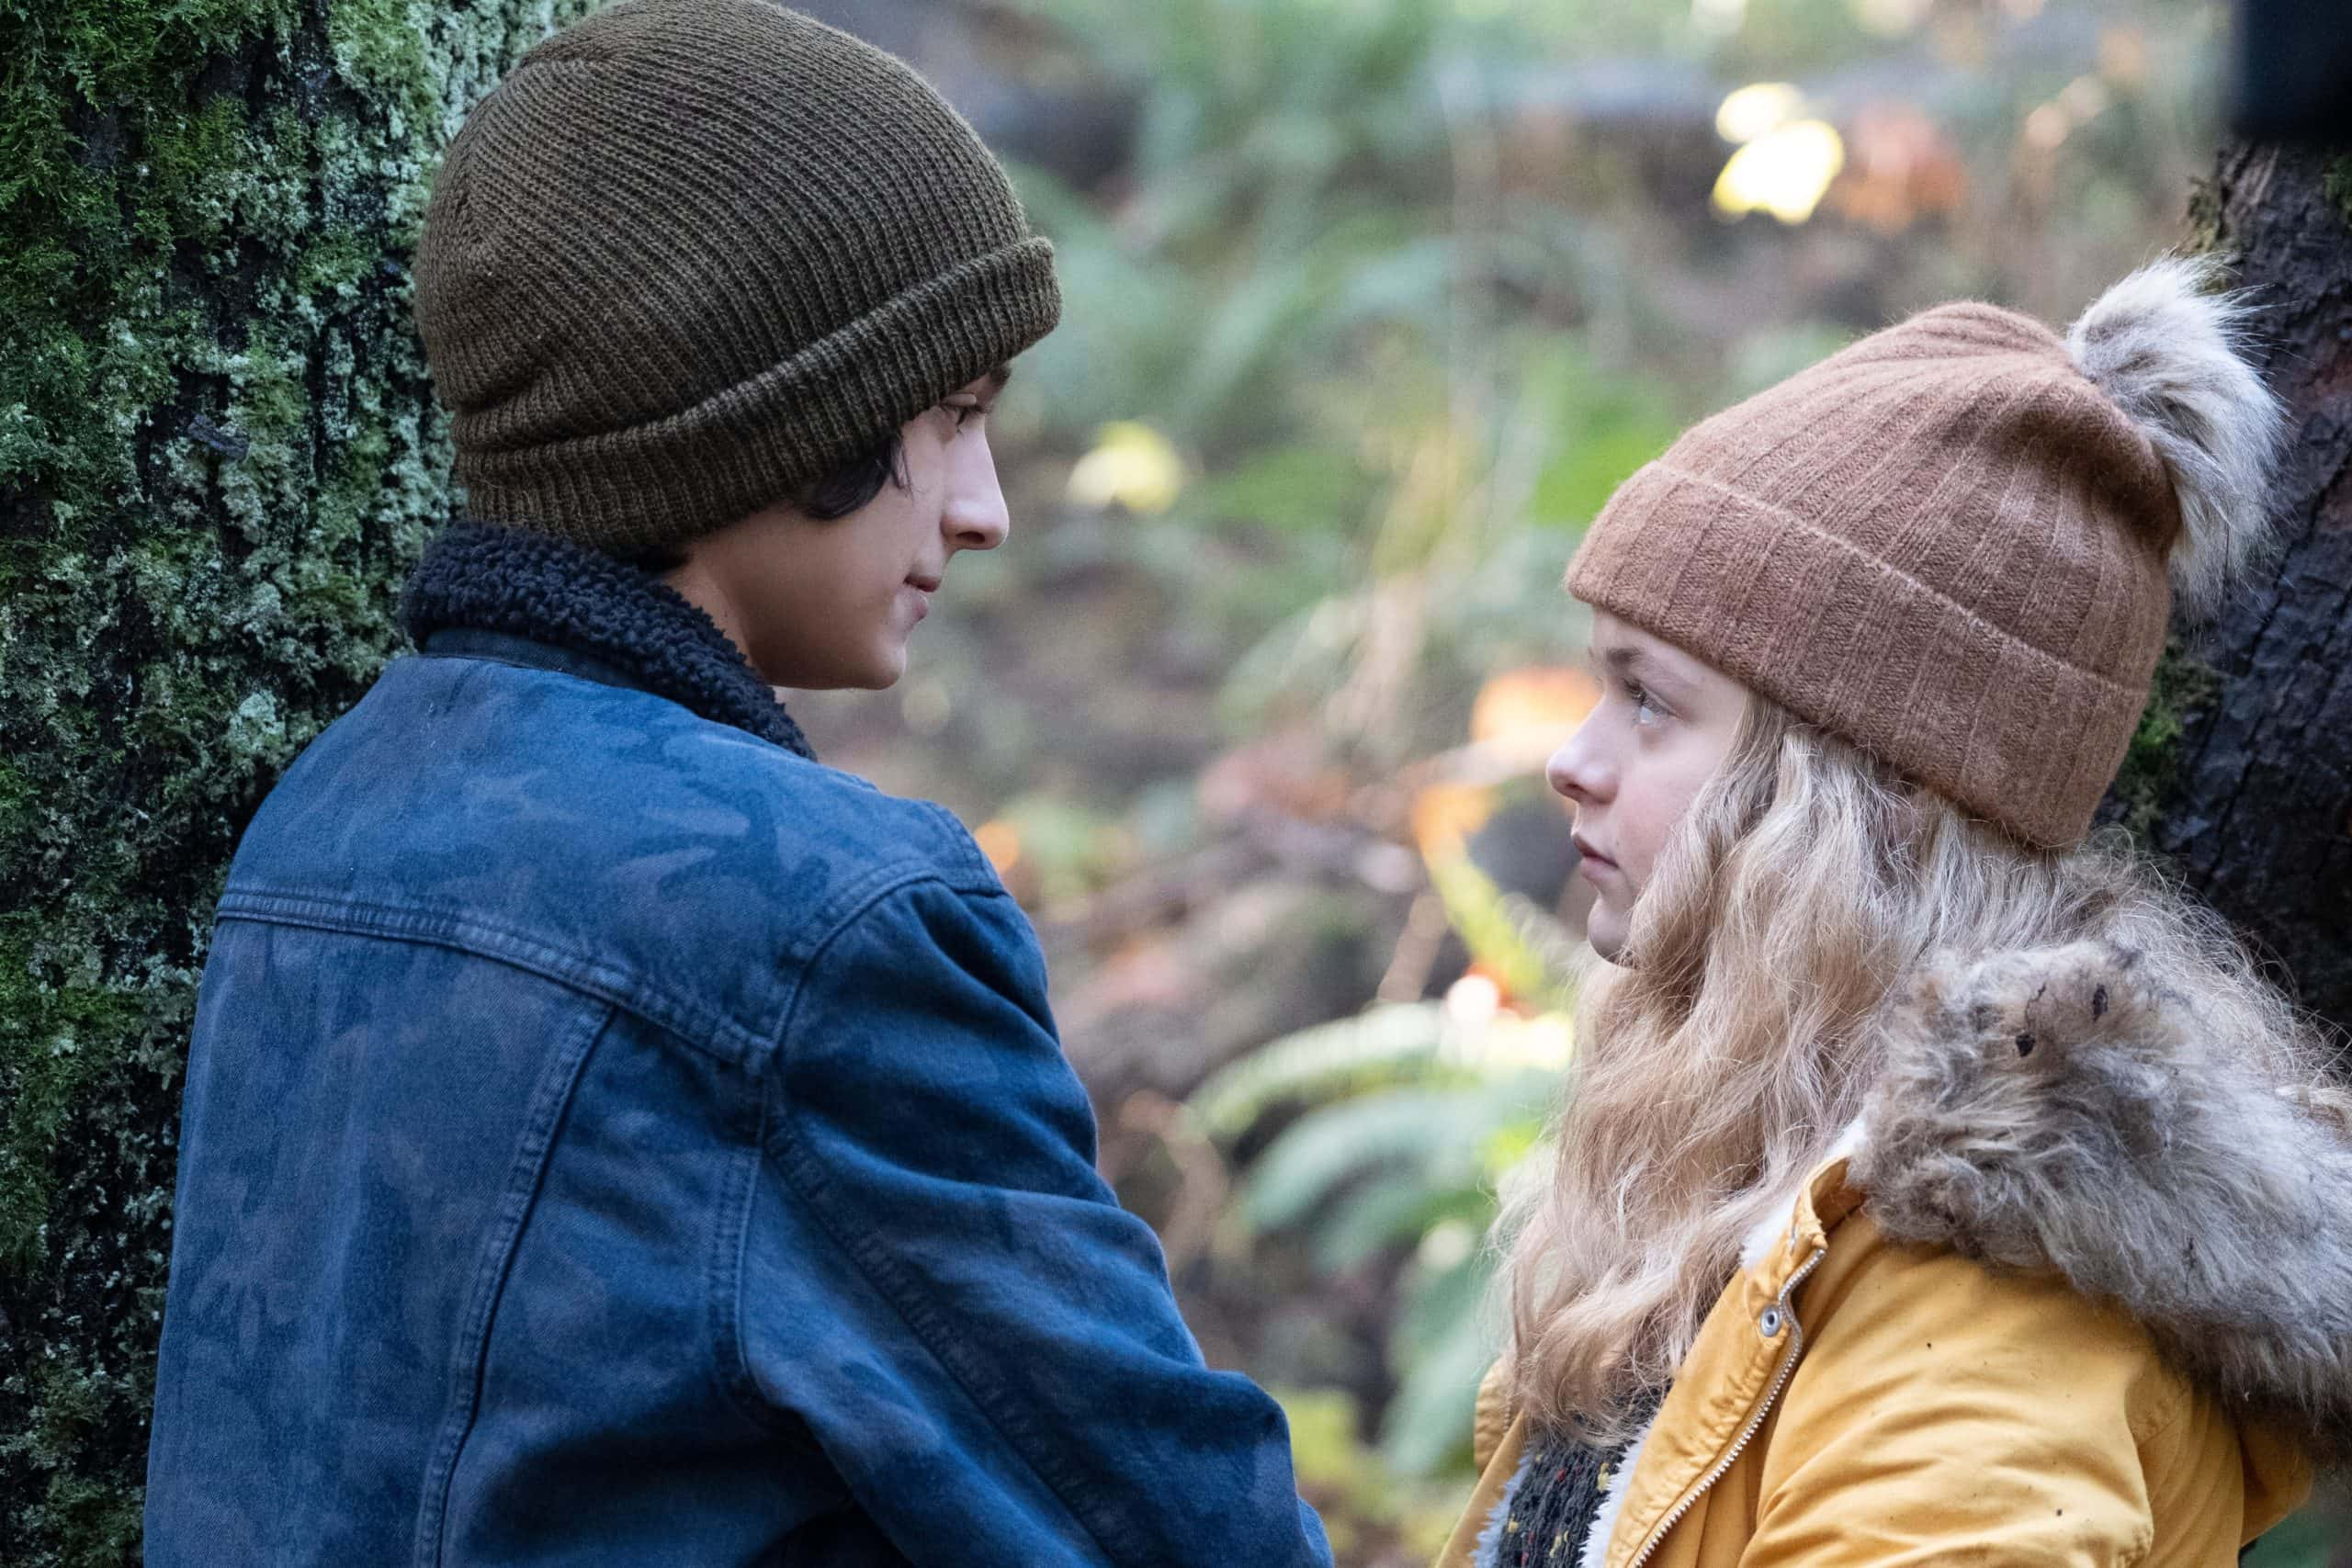 Kylie Rogers and Rio Mangini play believably tentative and mercurial young lovers in Home Before Dark